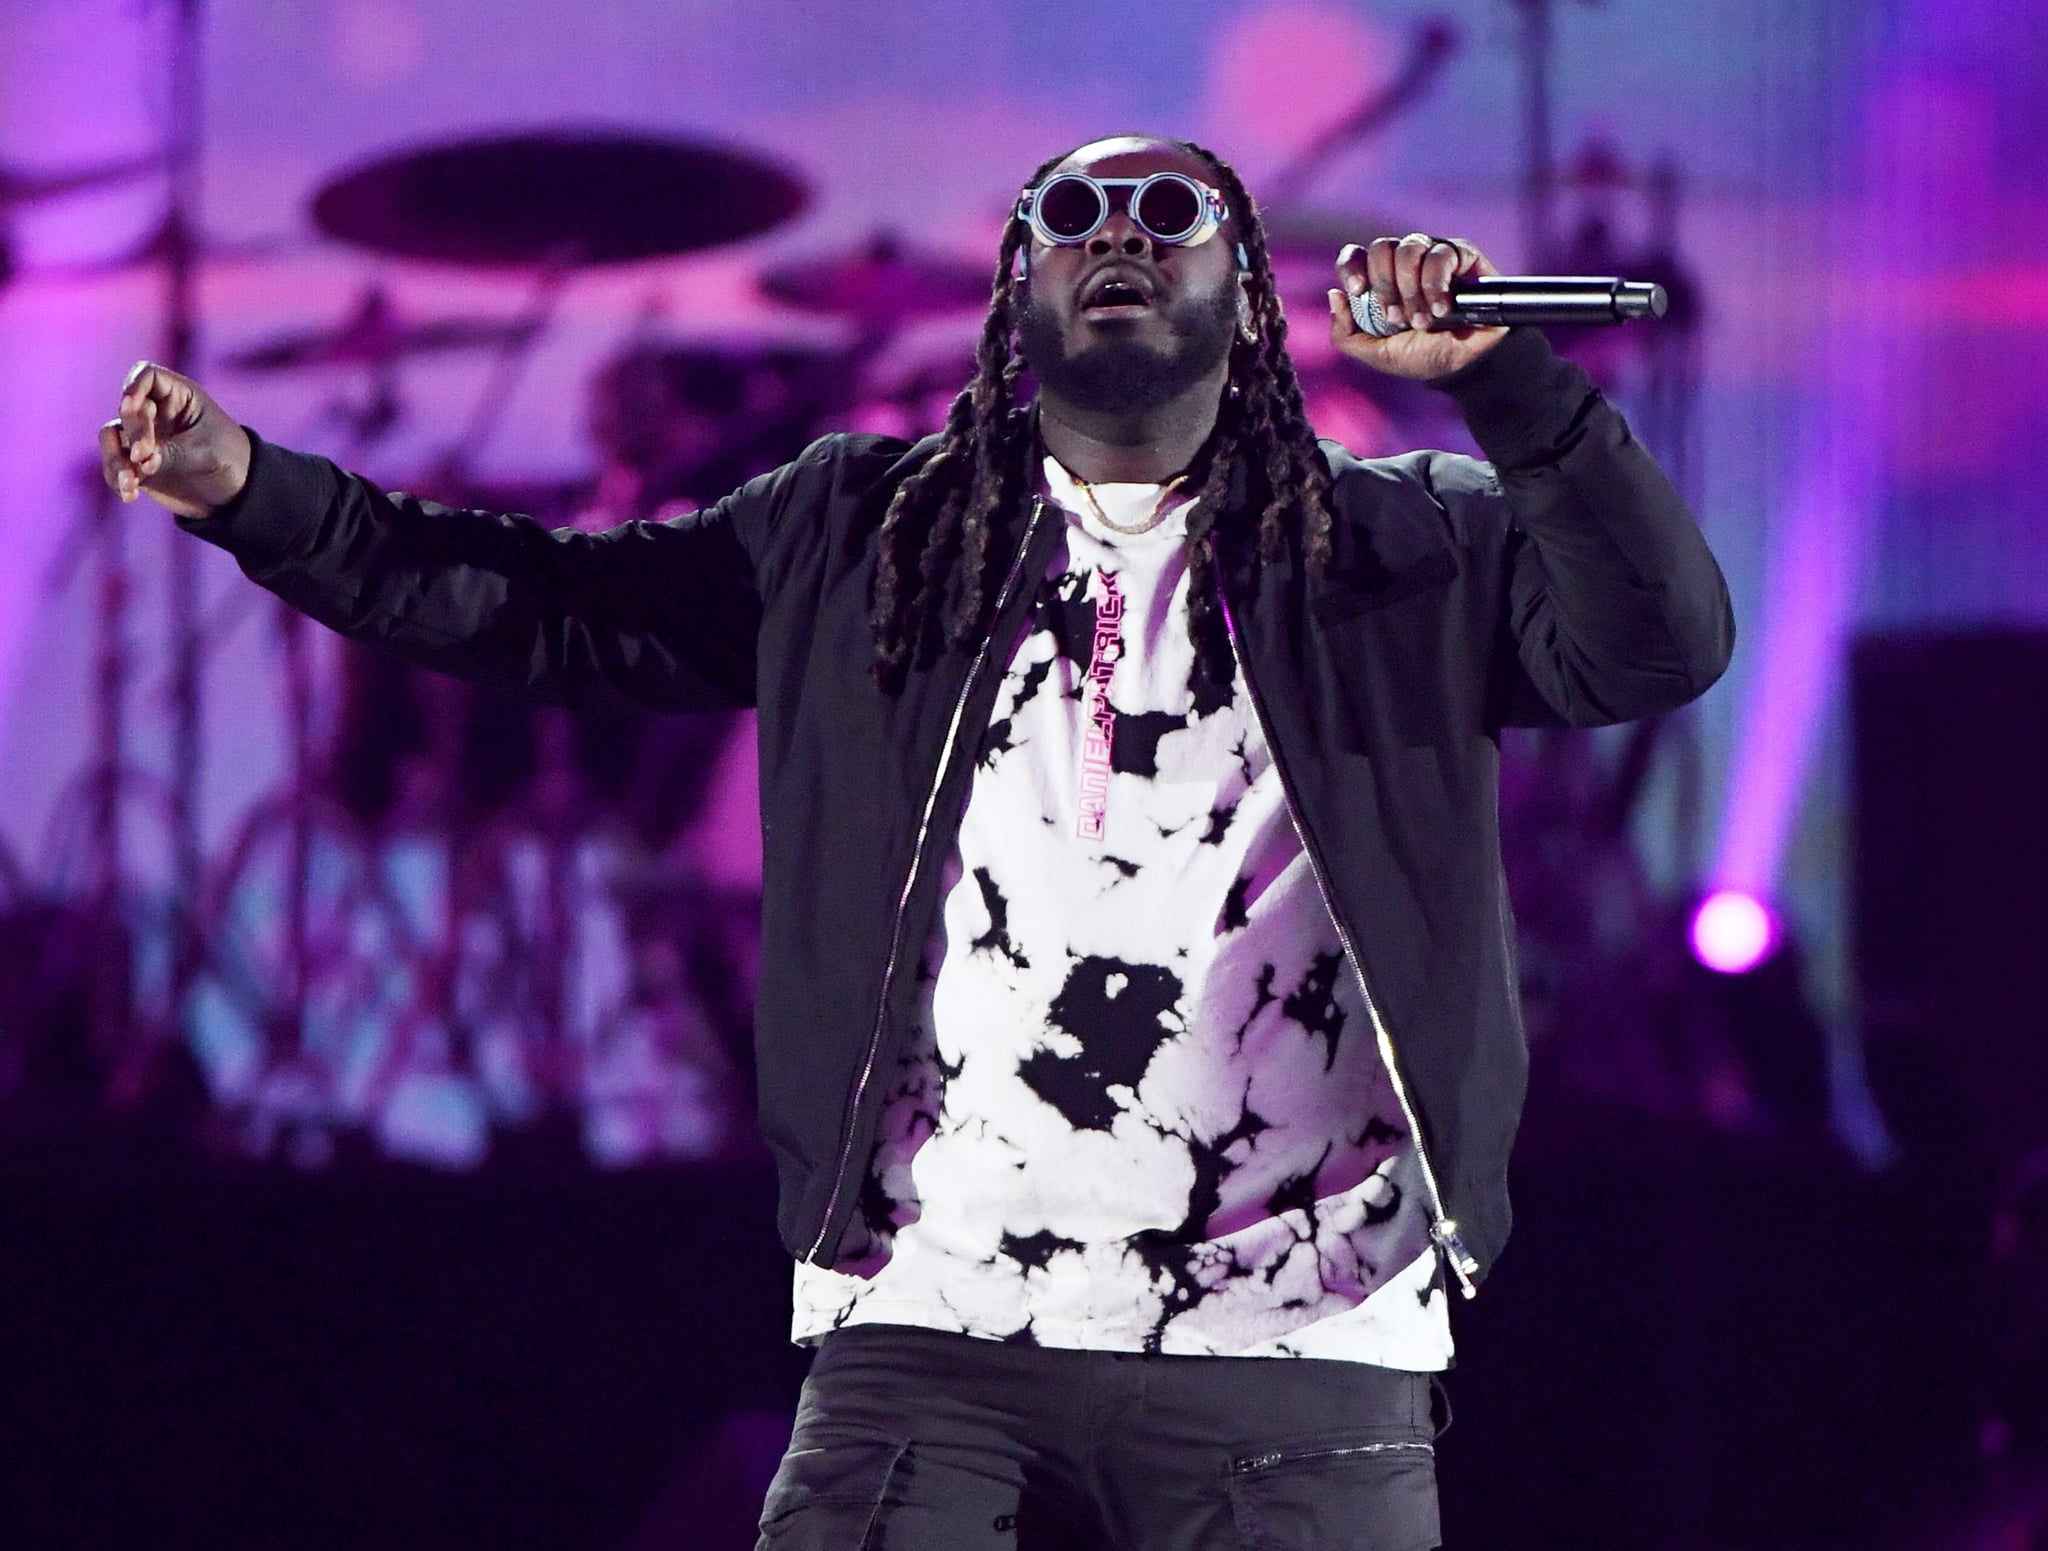 LAS VEGAS, NEVADA - SEPTEMBER 21:  T-Pain performs onstage during the 2019 iHeartRadio Music Festival at T-Mobile Arena on September 21, 2019 in Las Vegas, Nevada.  (Photo by Ethan Miller/Getty Images)